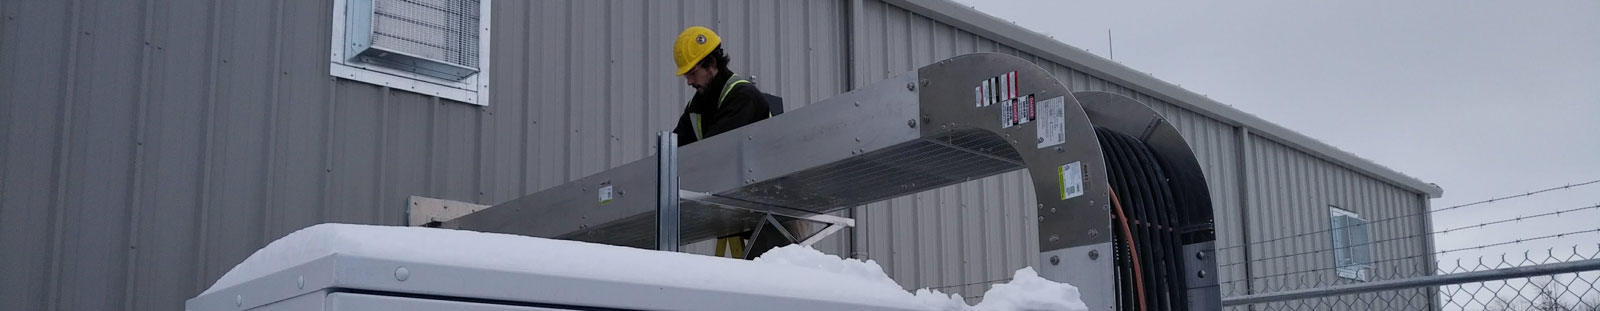 stratford-battery-install-ductbank